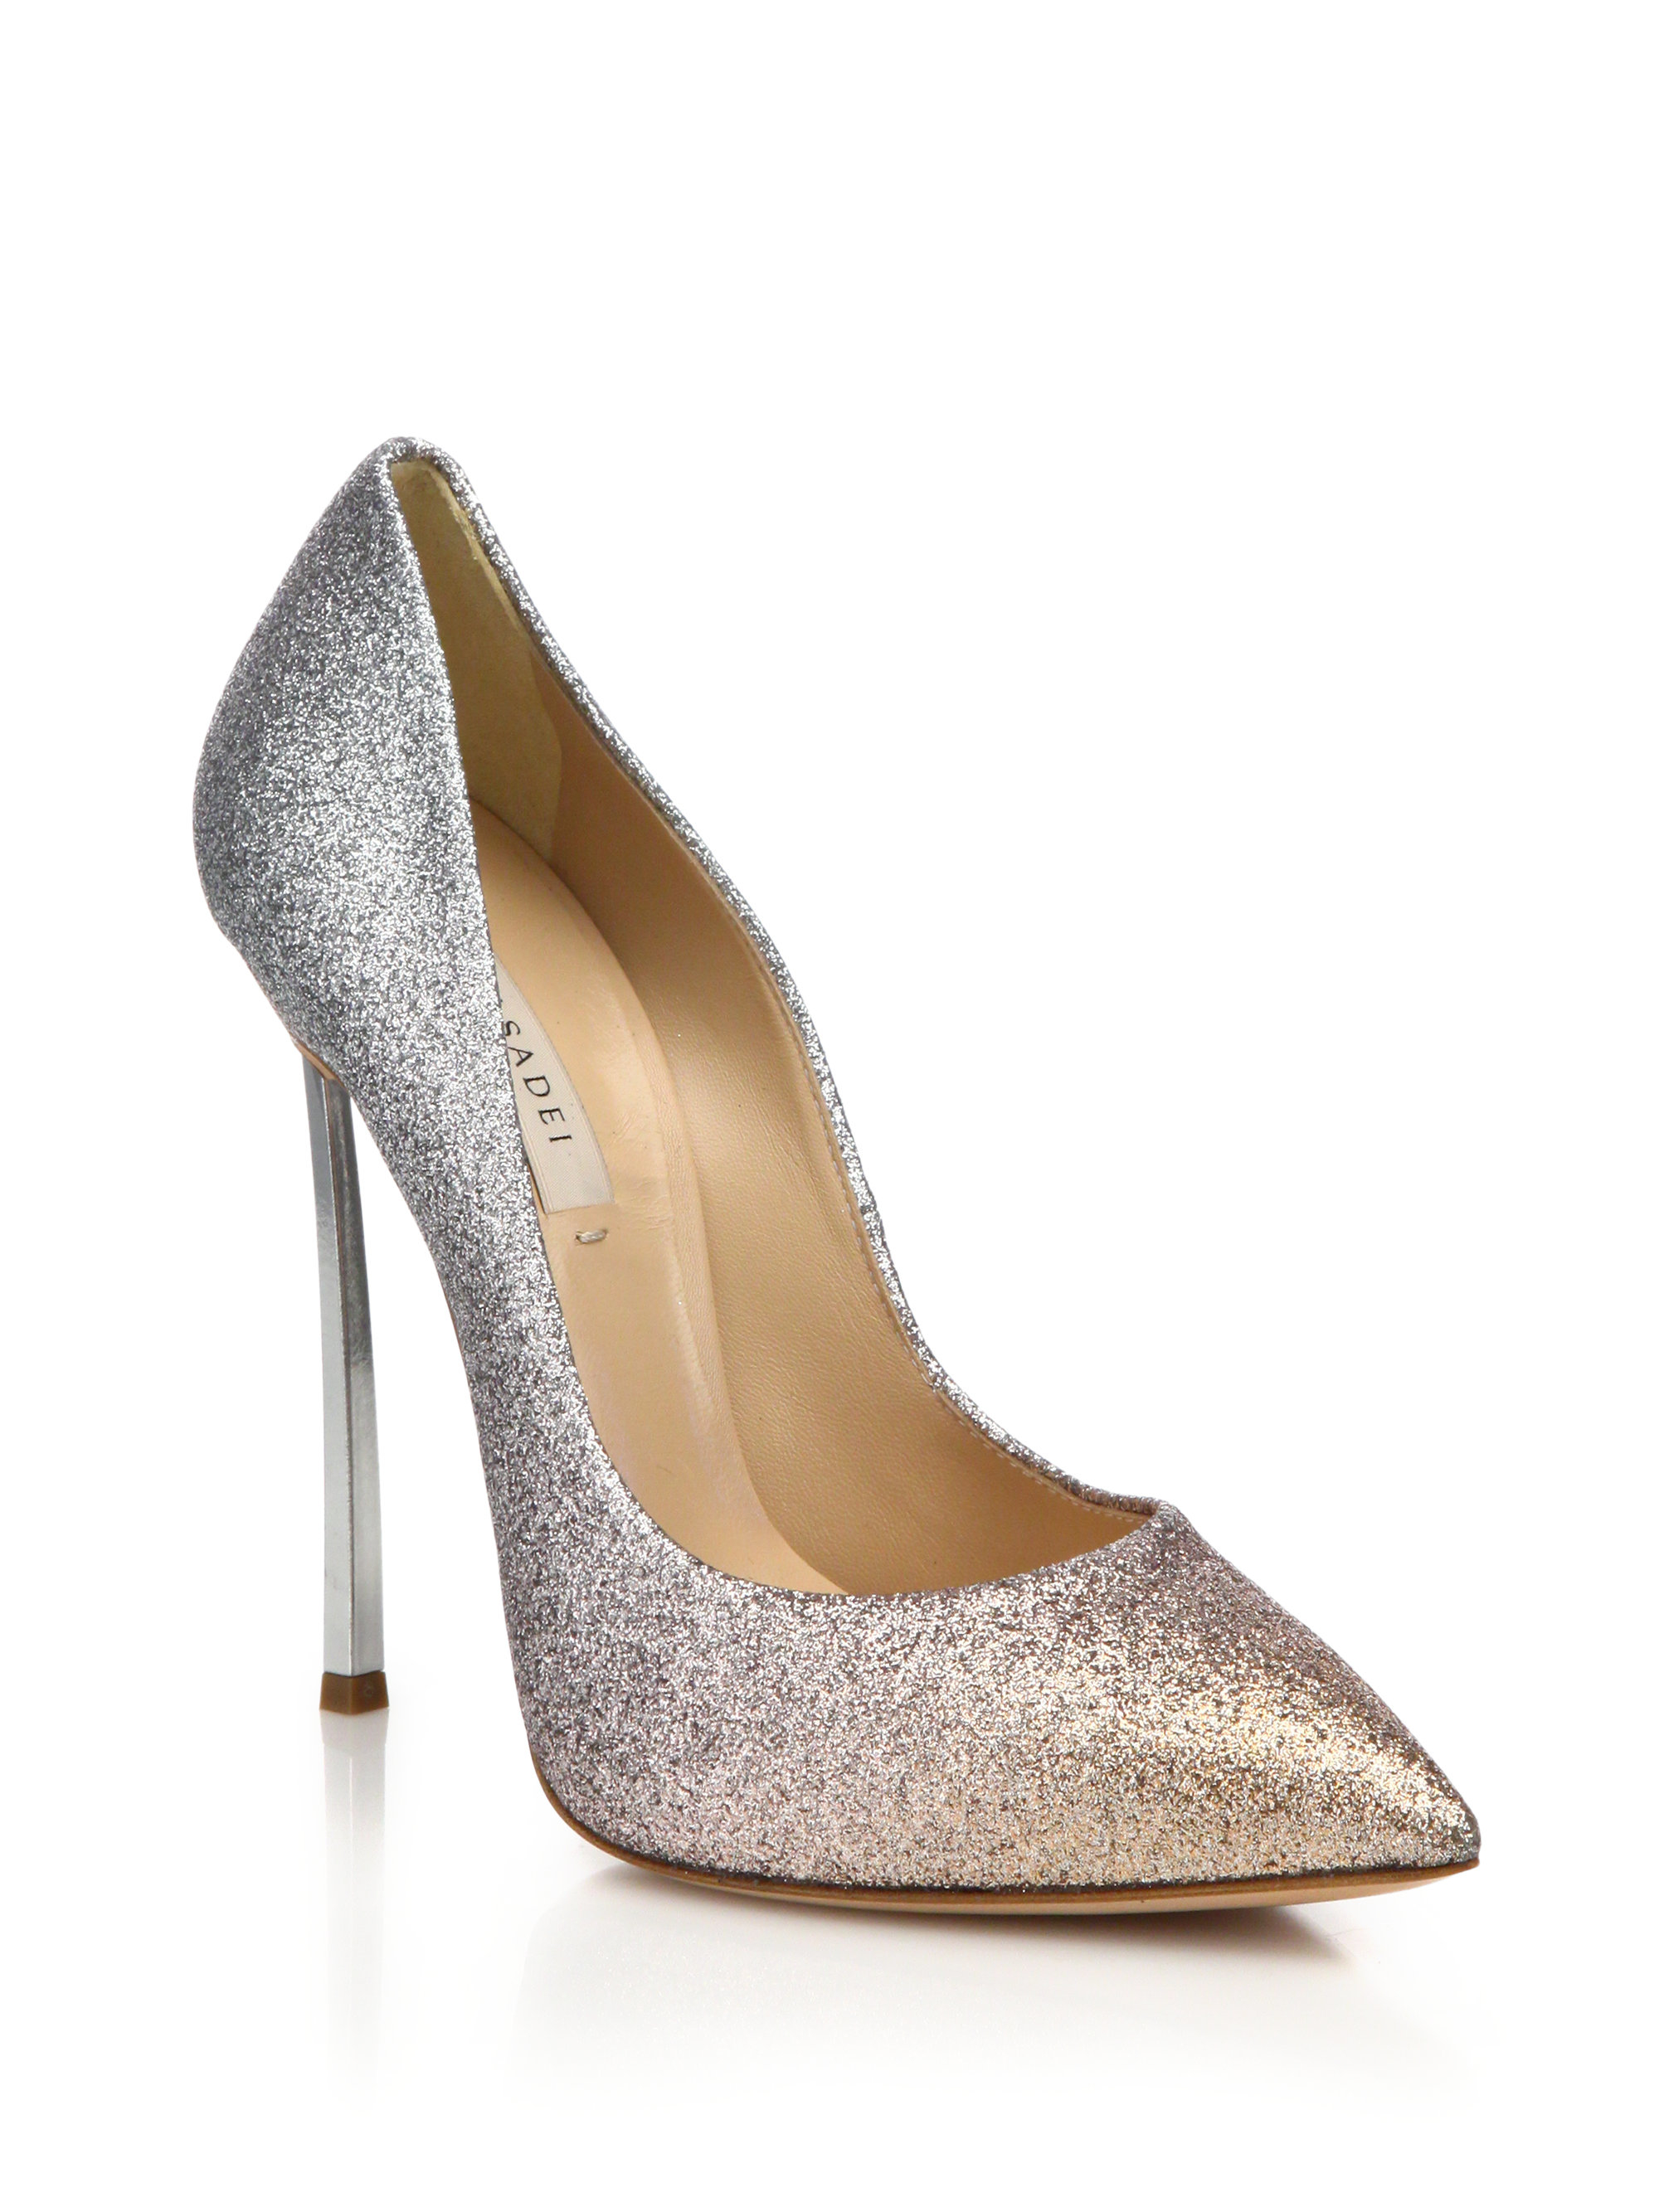 official site sale online Casadei Blade metallic pumps outlet fast delivery HFvWfpz